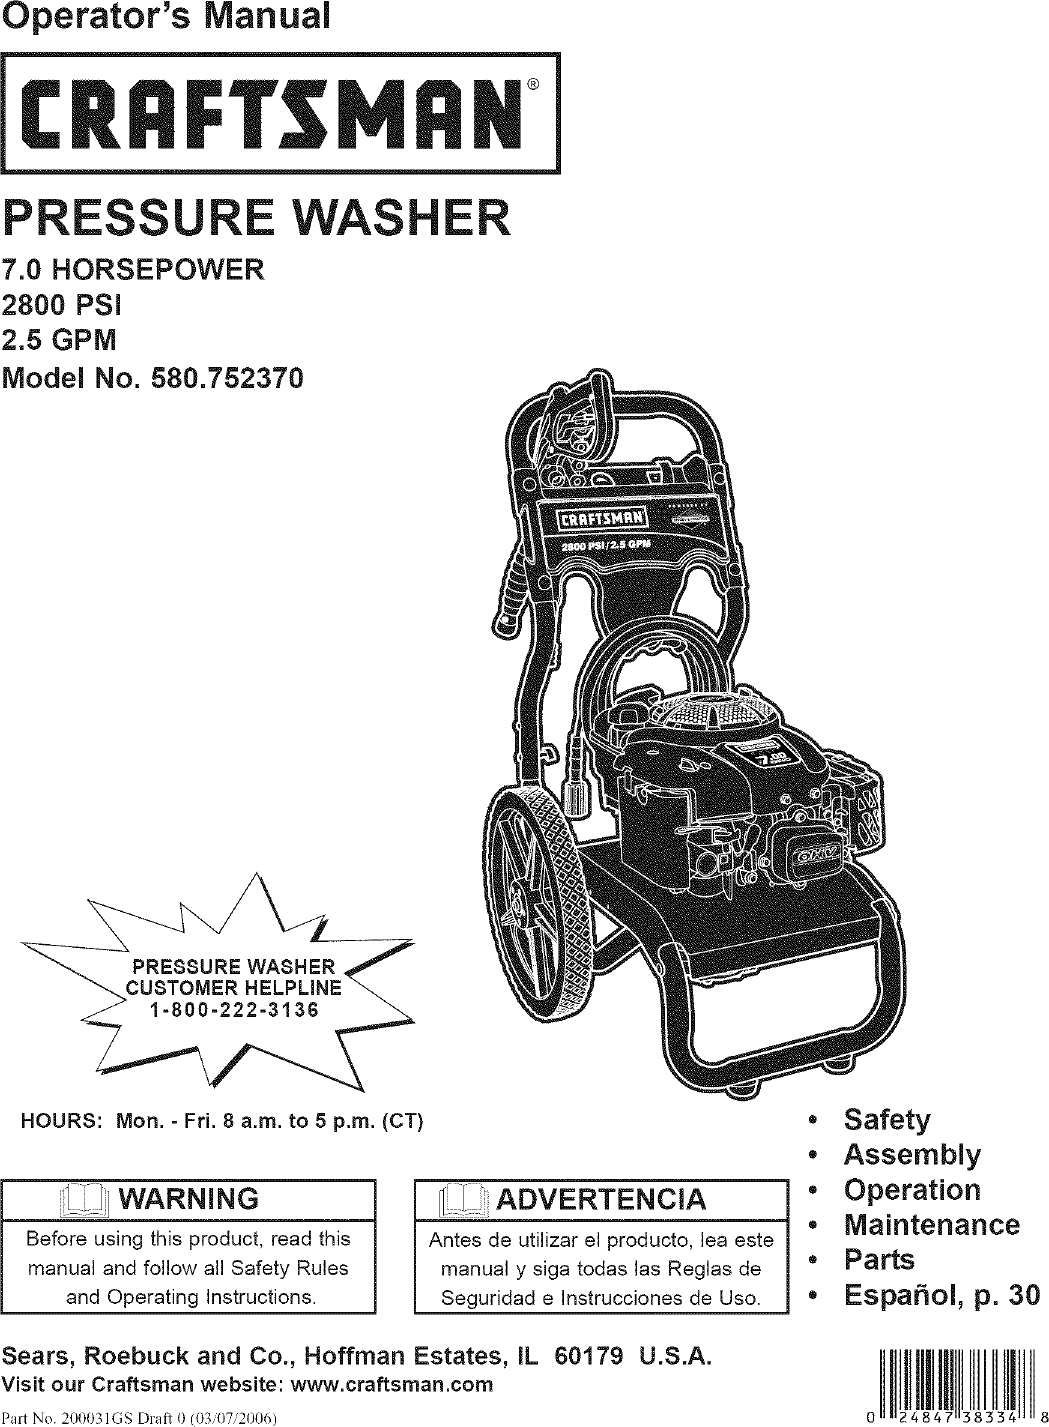 Craftsman 580752370 User Manual PRESSURE WASHER Manuals